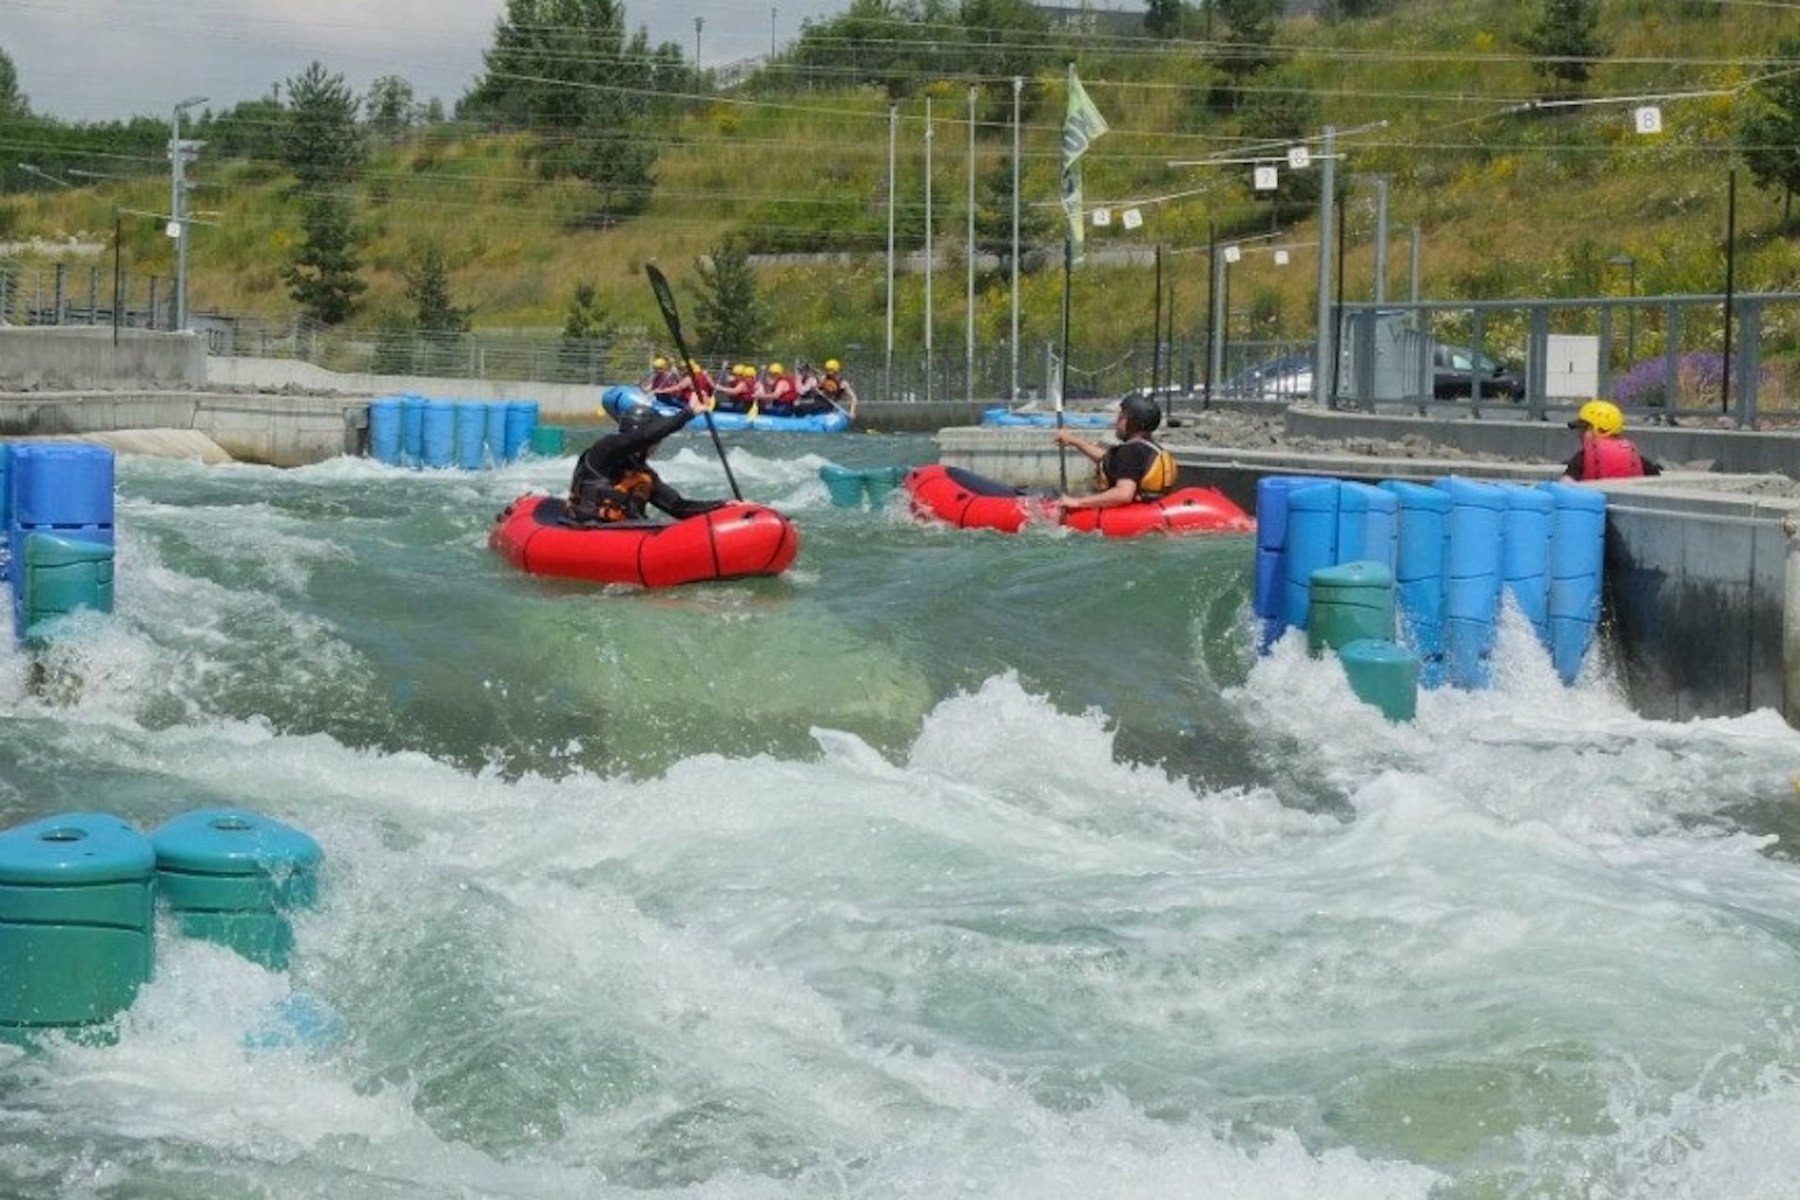 Packraft whitewater course 2020 at Kanupark Markkleeberg, Leipzig